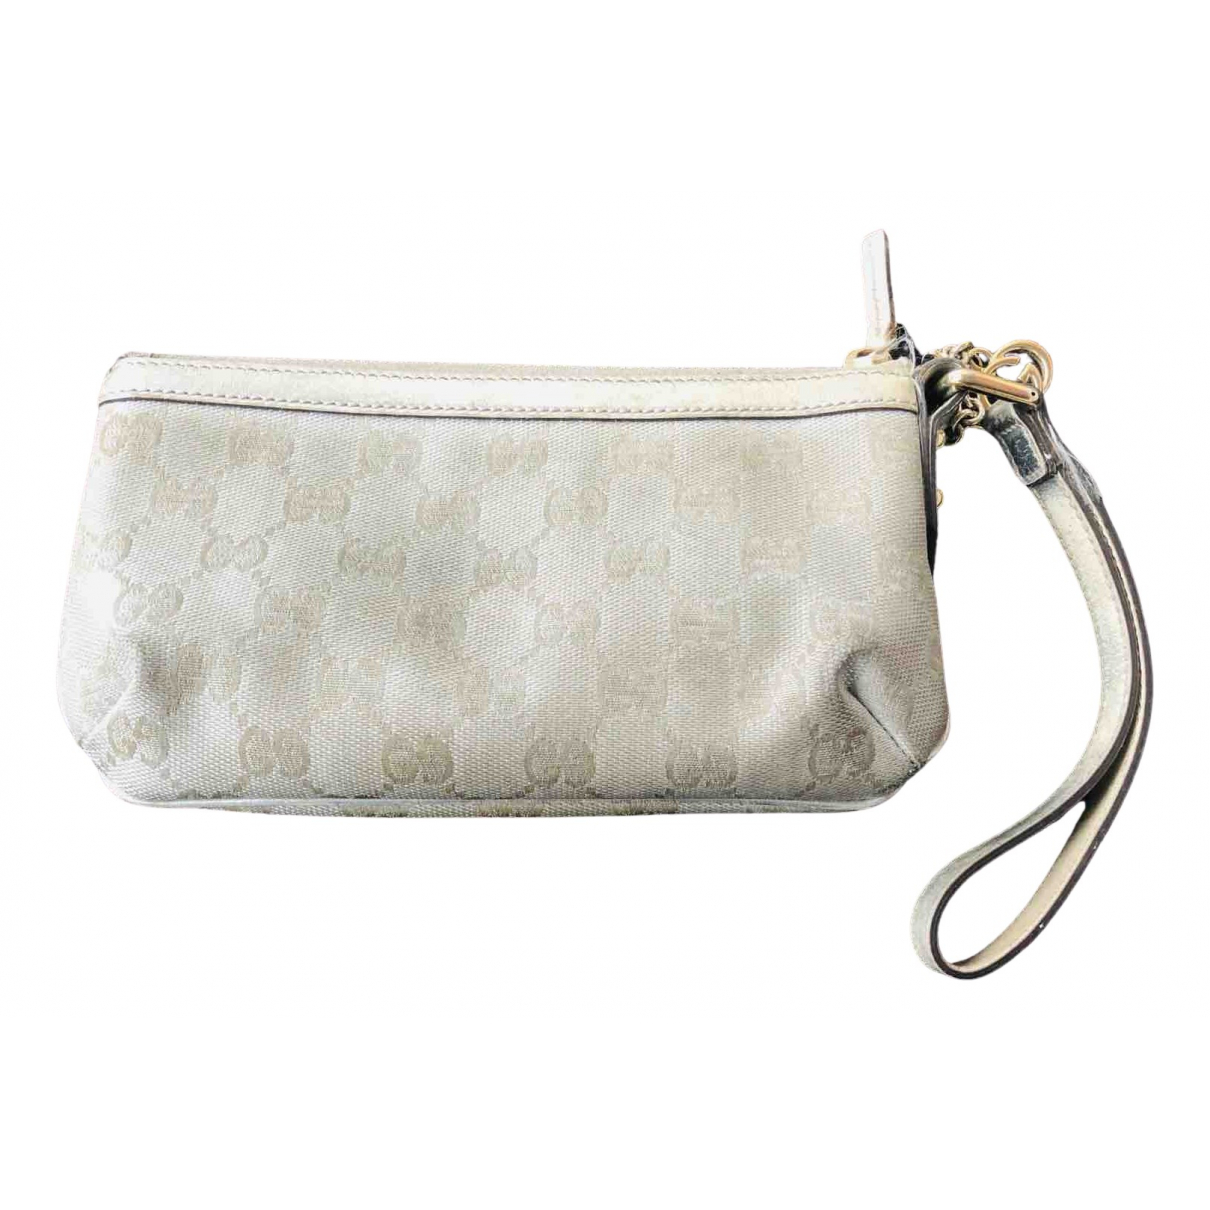 Gucci \N Clutch in  Silber Leinen